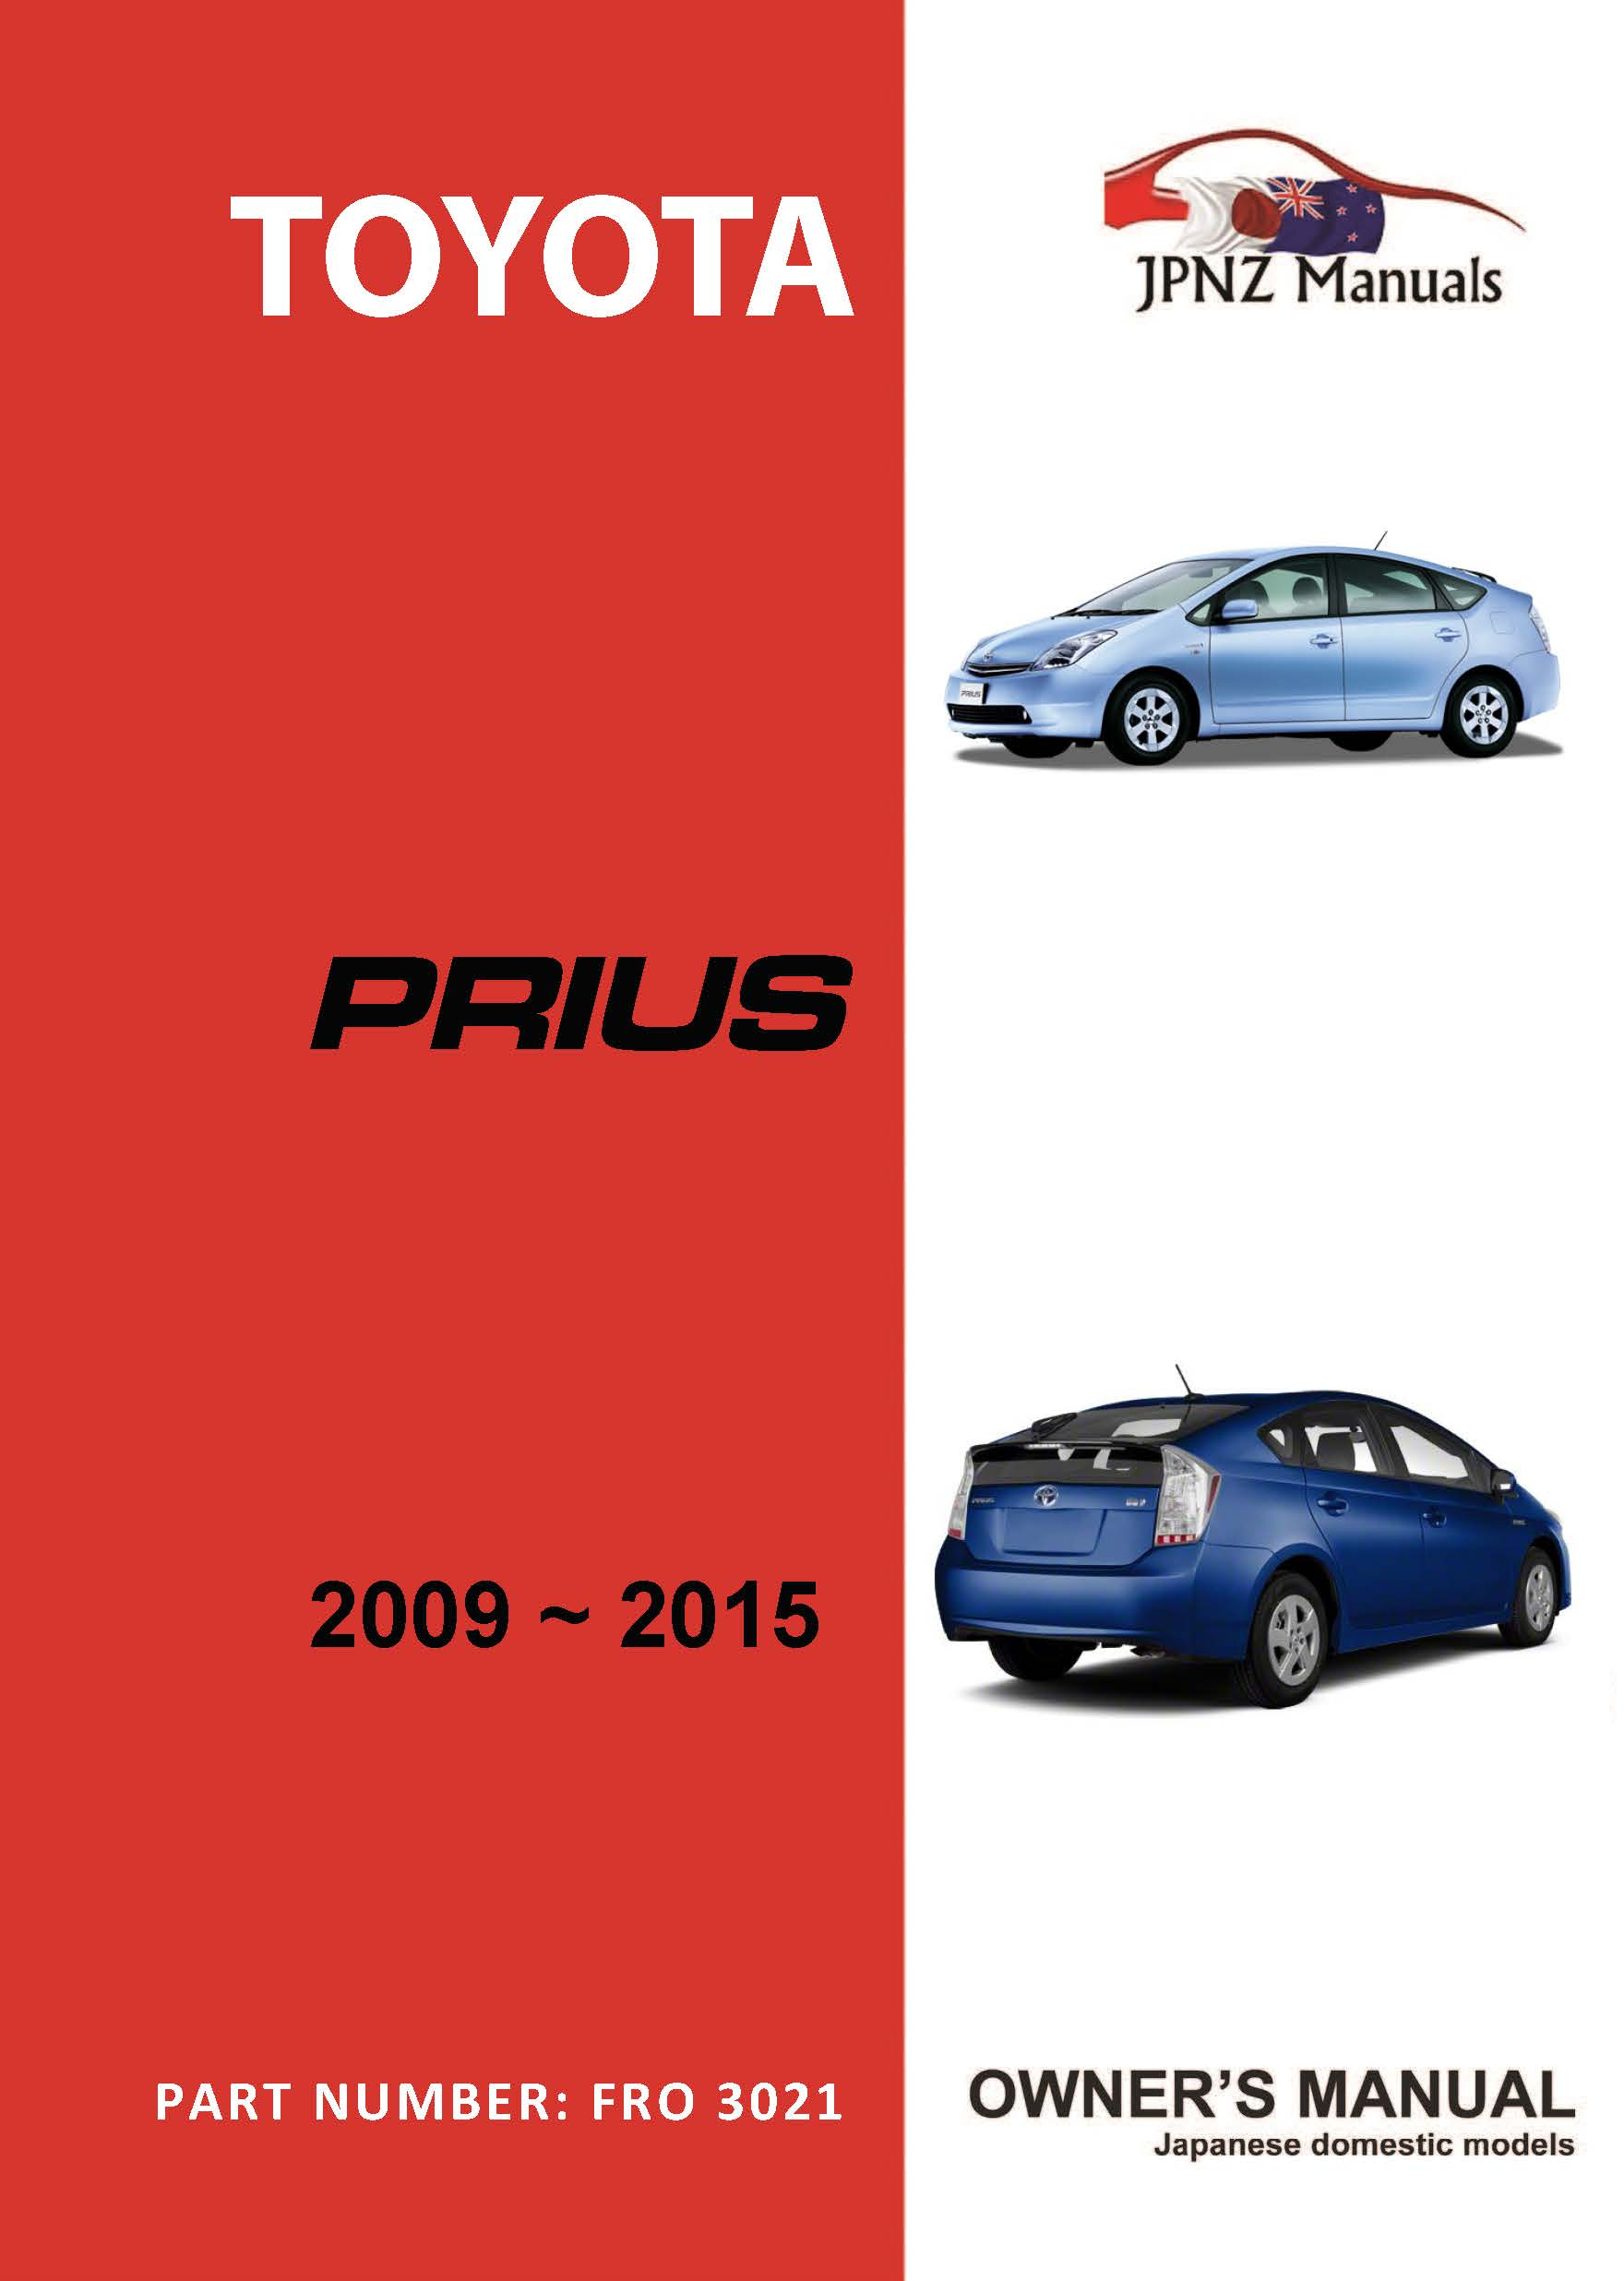 toyota prius owners user manual 2009 2015 jpnz new rh jpnz co nz prius owners manual 2017 prius owners manual 2014